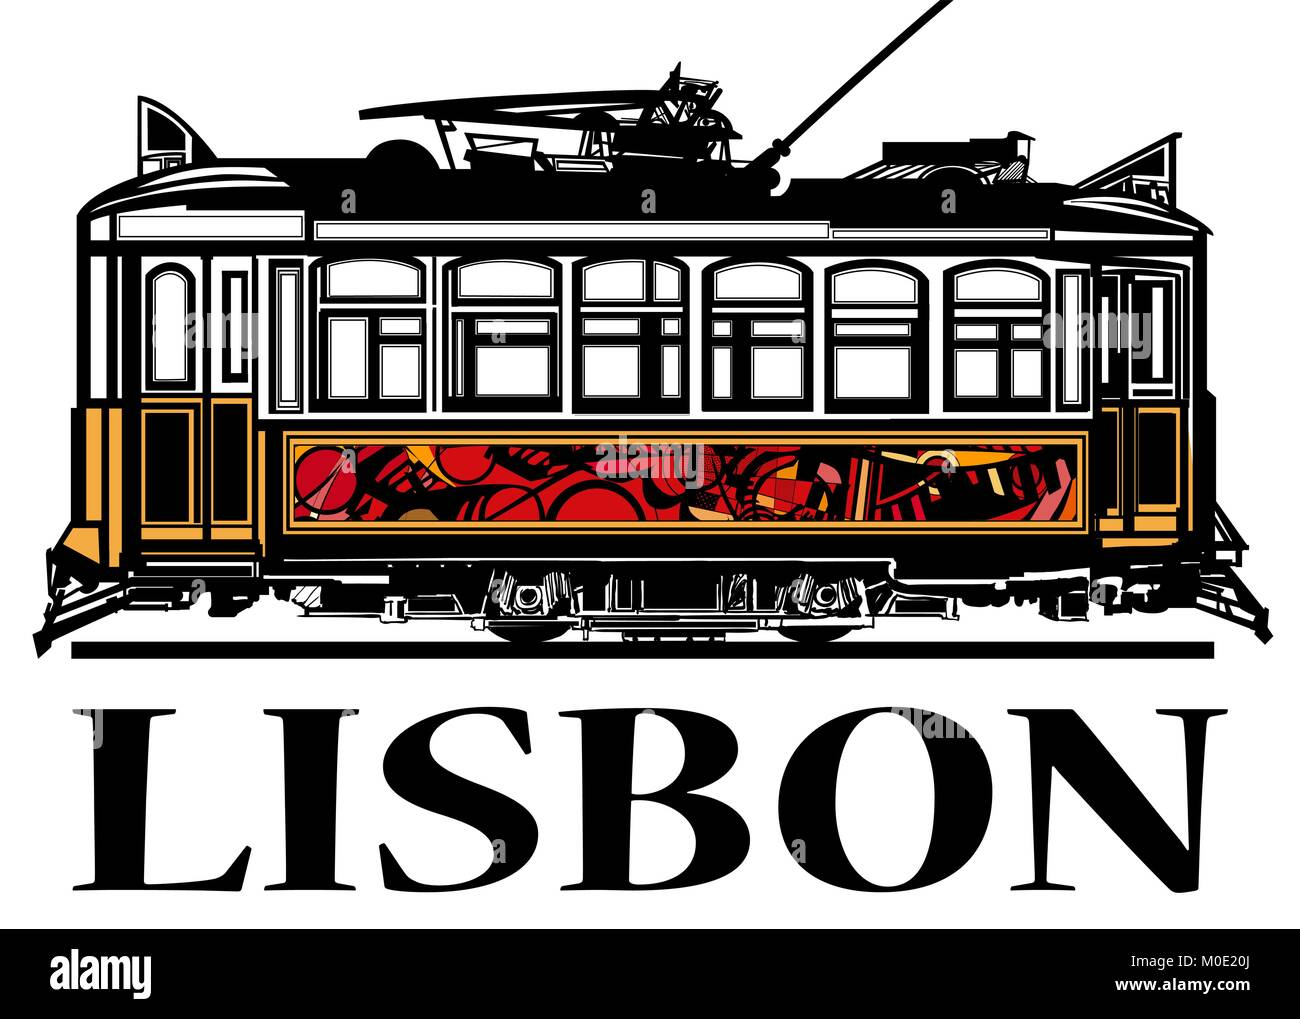 Old classic yellow tram of Lisbon - vector illustration - Stock Vector